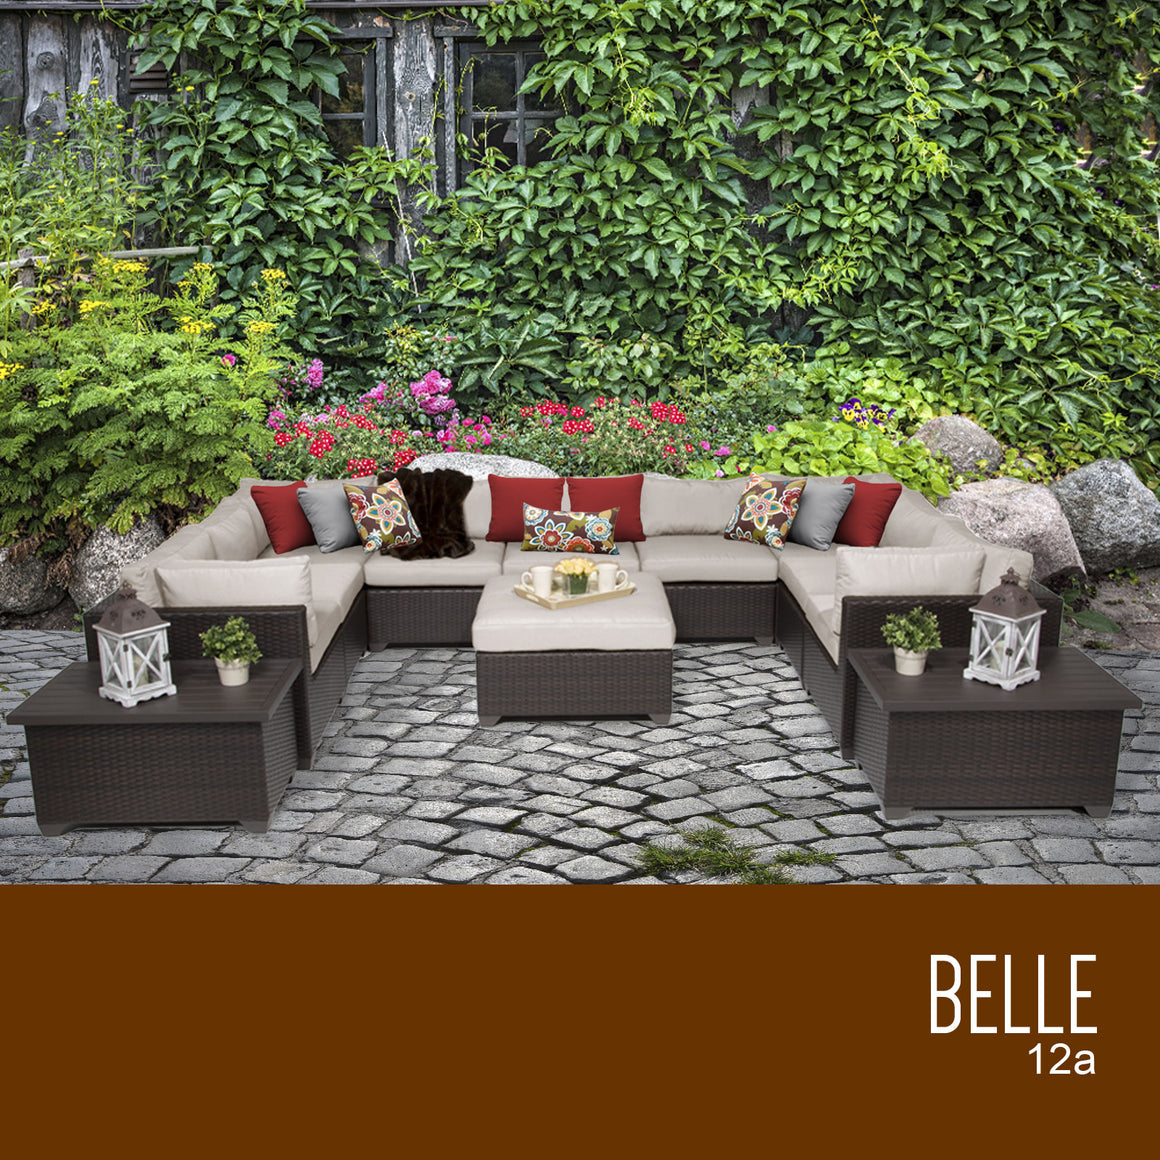 Belle 12 Piece Outdoor Wicker Patio Furniture Set 12a , TK Classics- grayburd